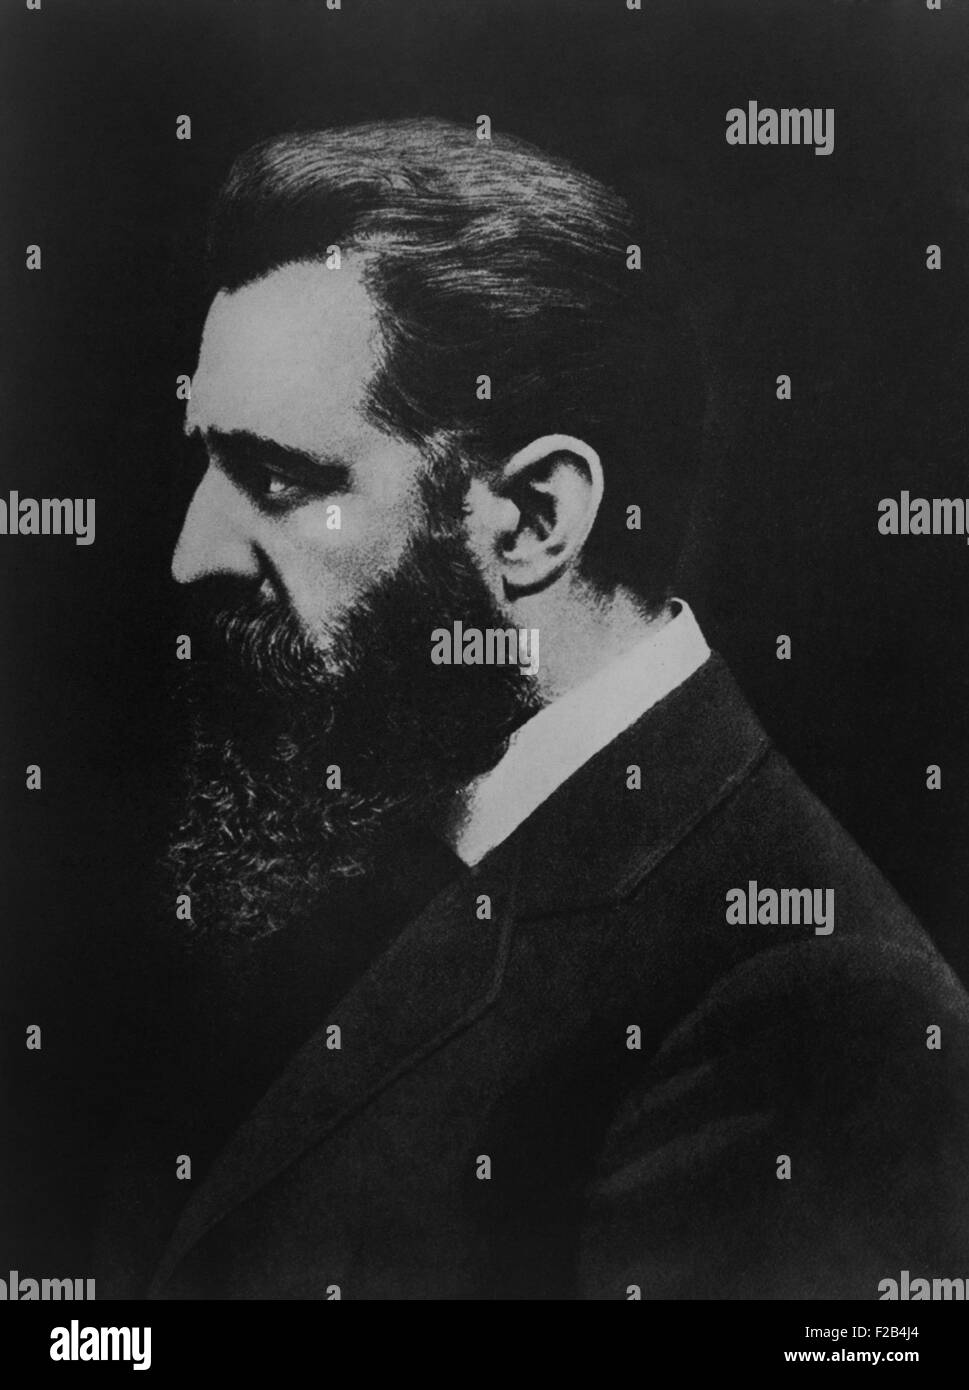 Theodore Herzl founded the World Zionist Organization in 1897. He promoted Jewish migration to Palestine to establish - Stock Image